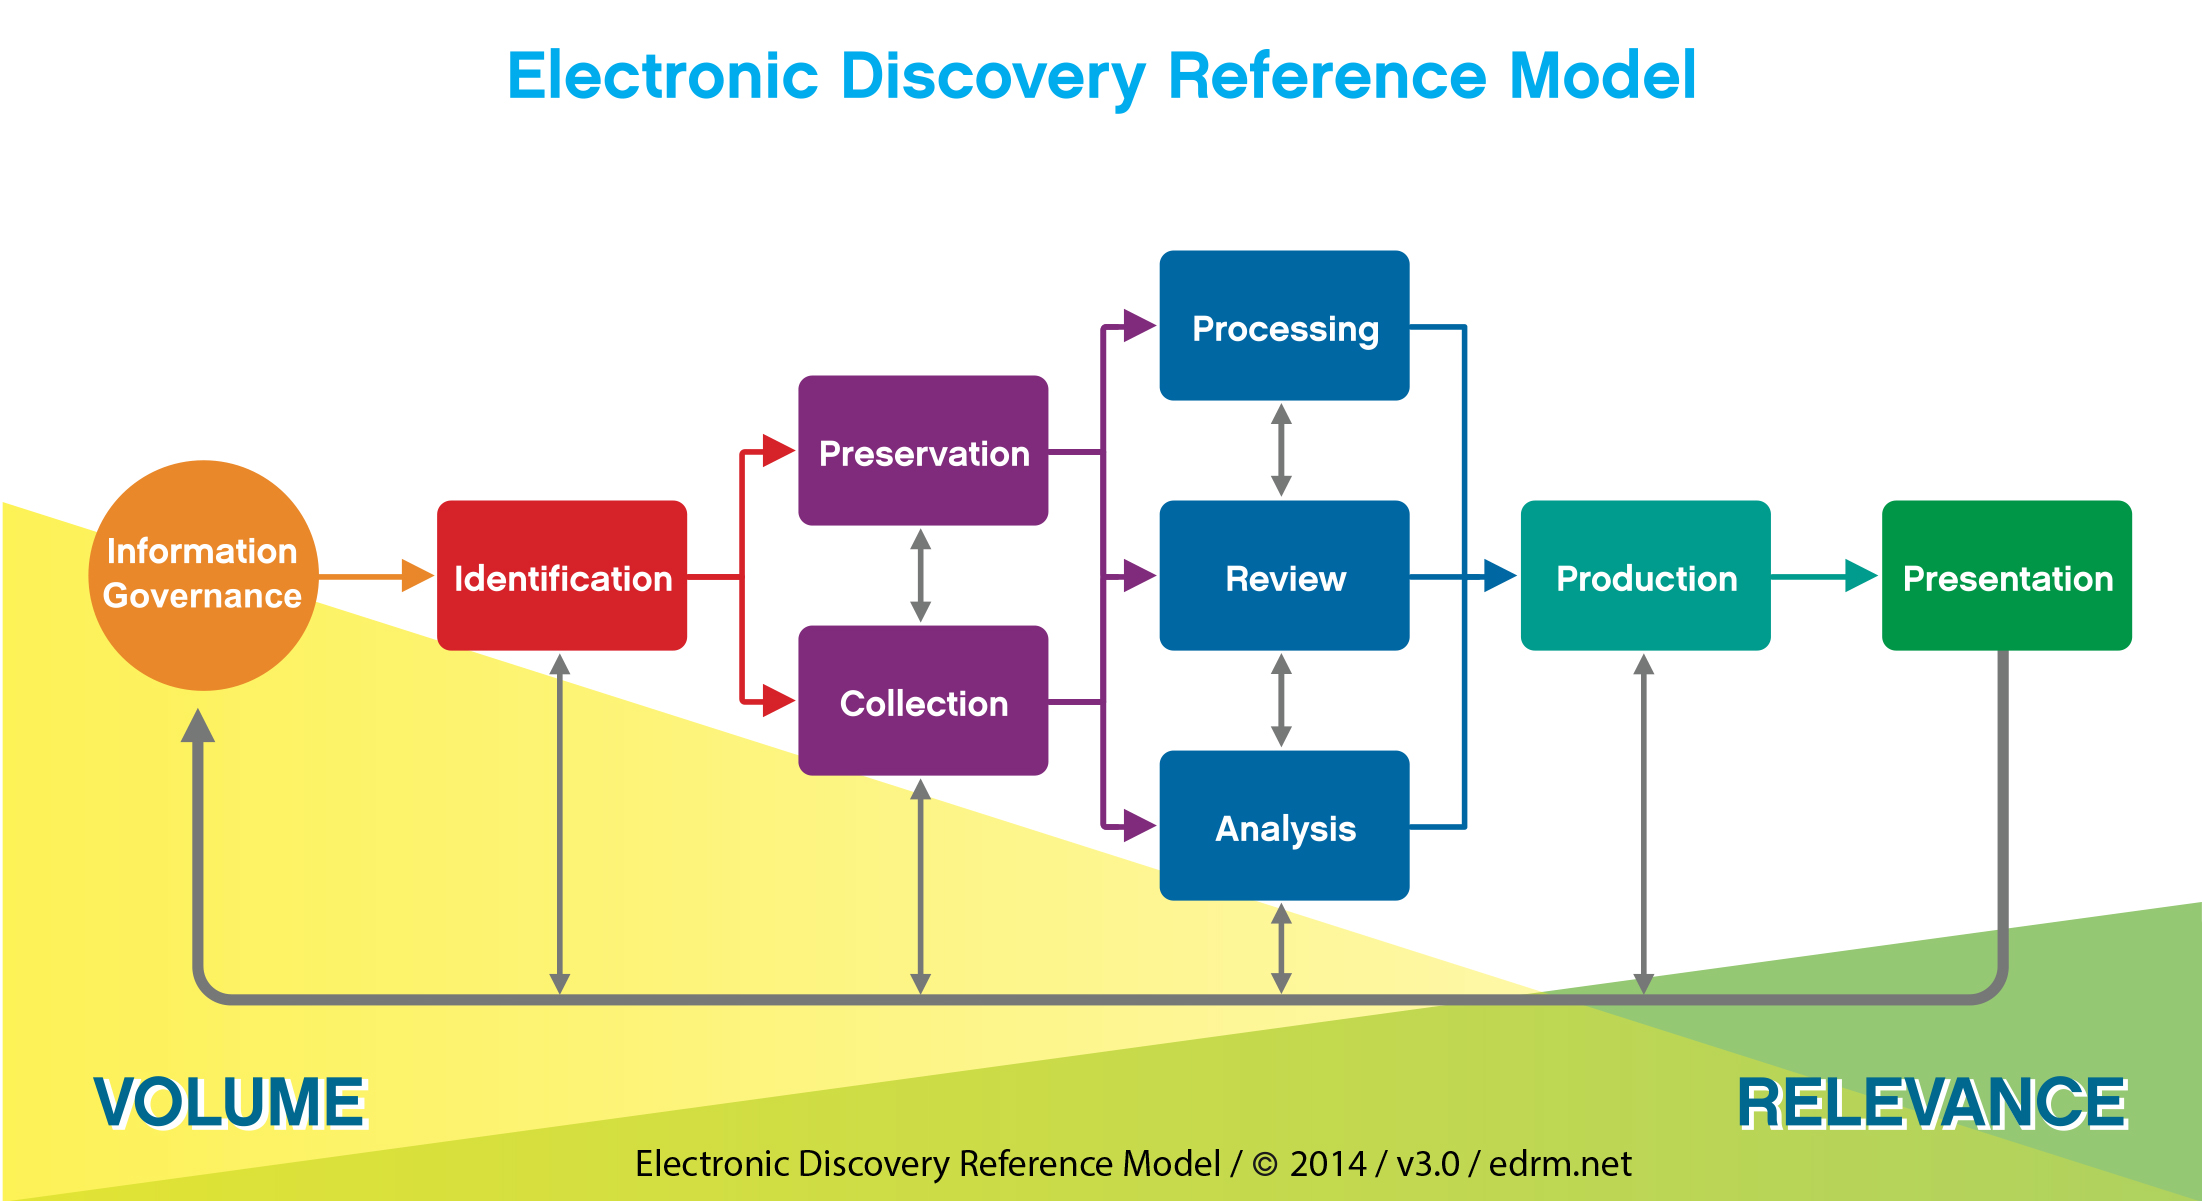 Source: EDRM diagram and reference guide